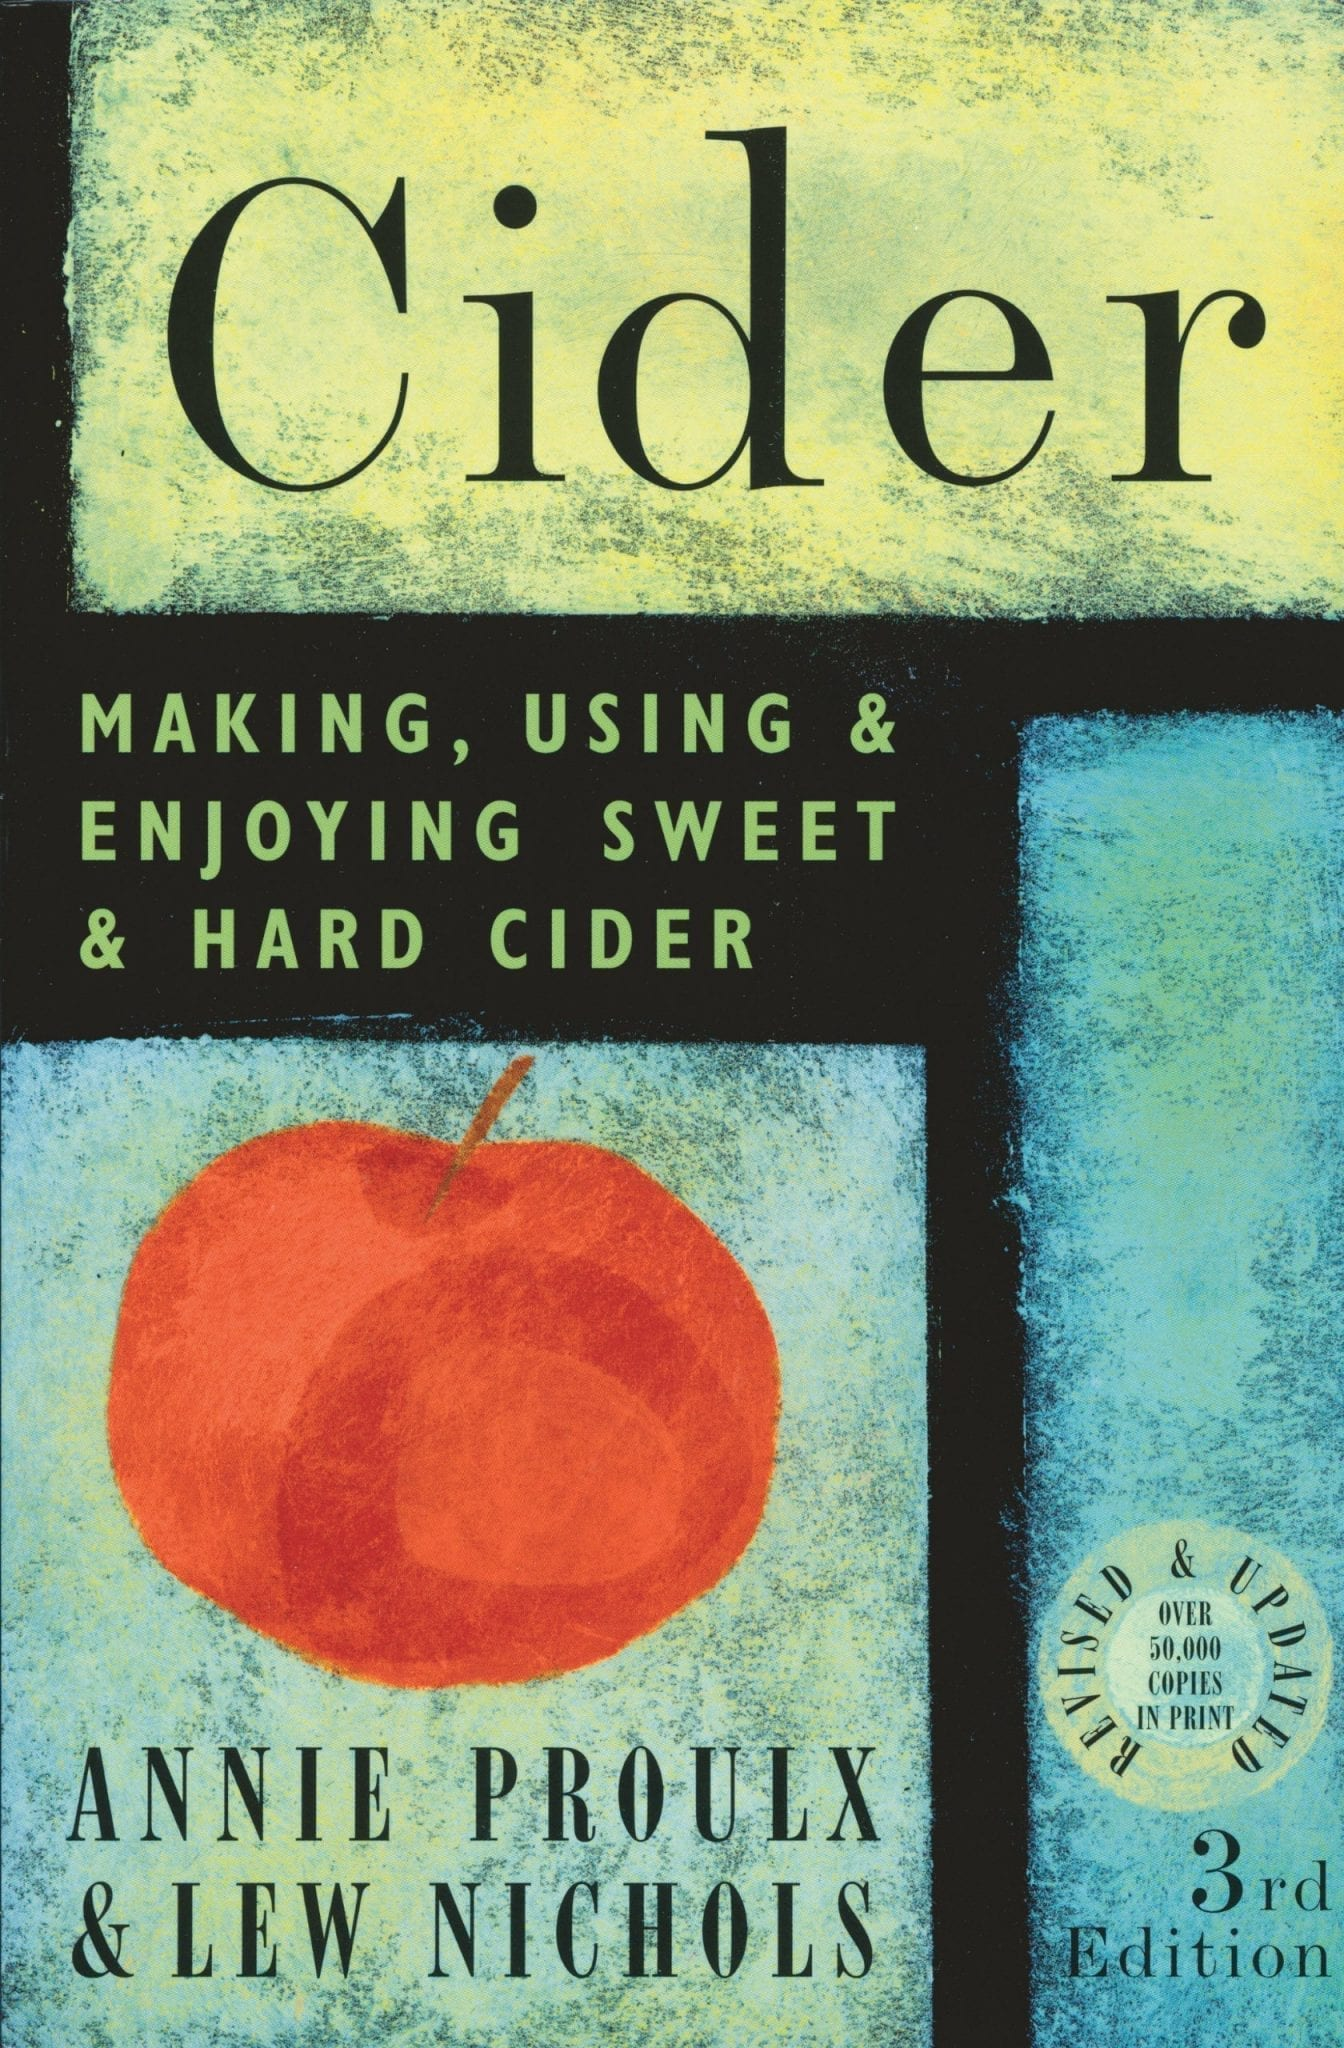 Gardening Library cider scaled